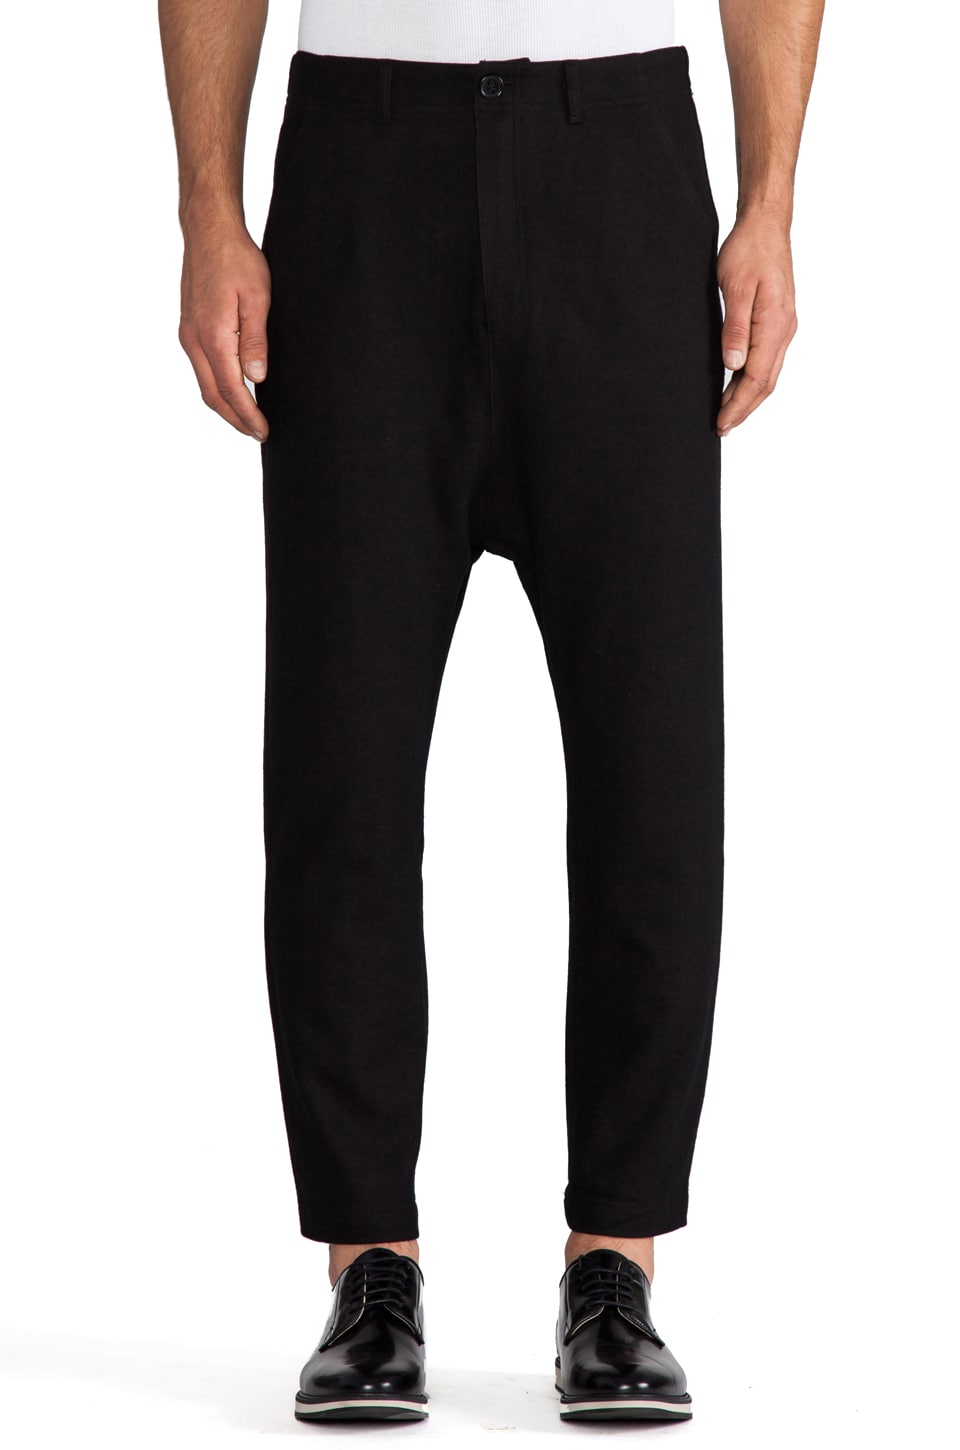 Kai-aakmann Drop Trouser in Black